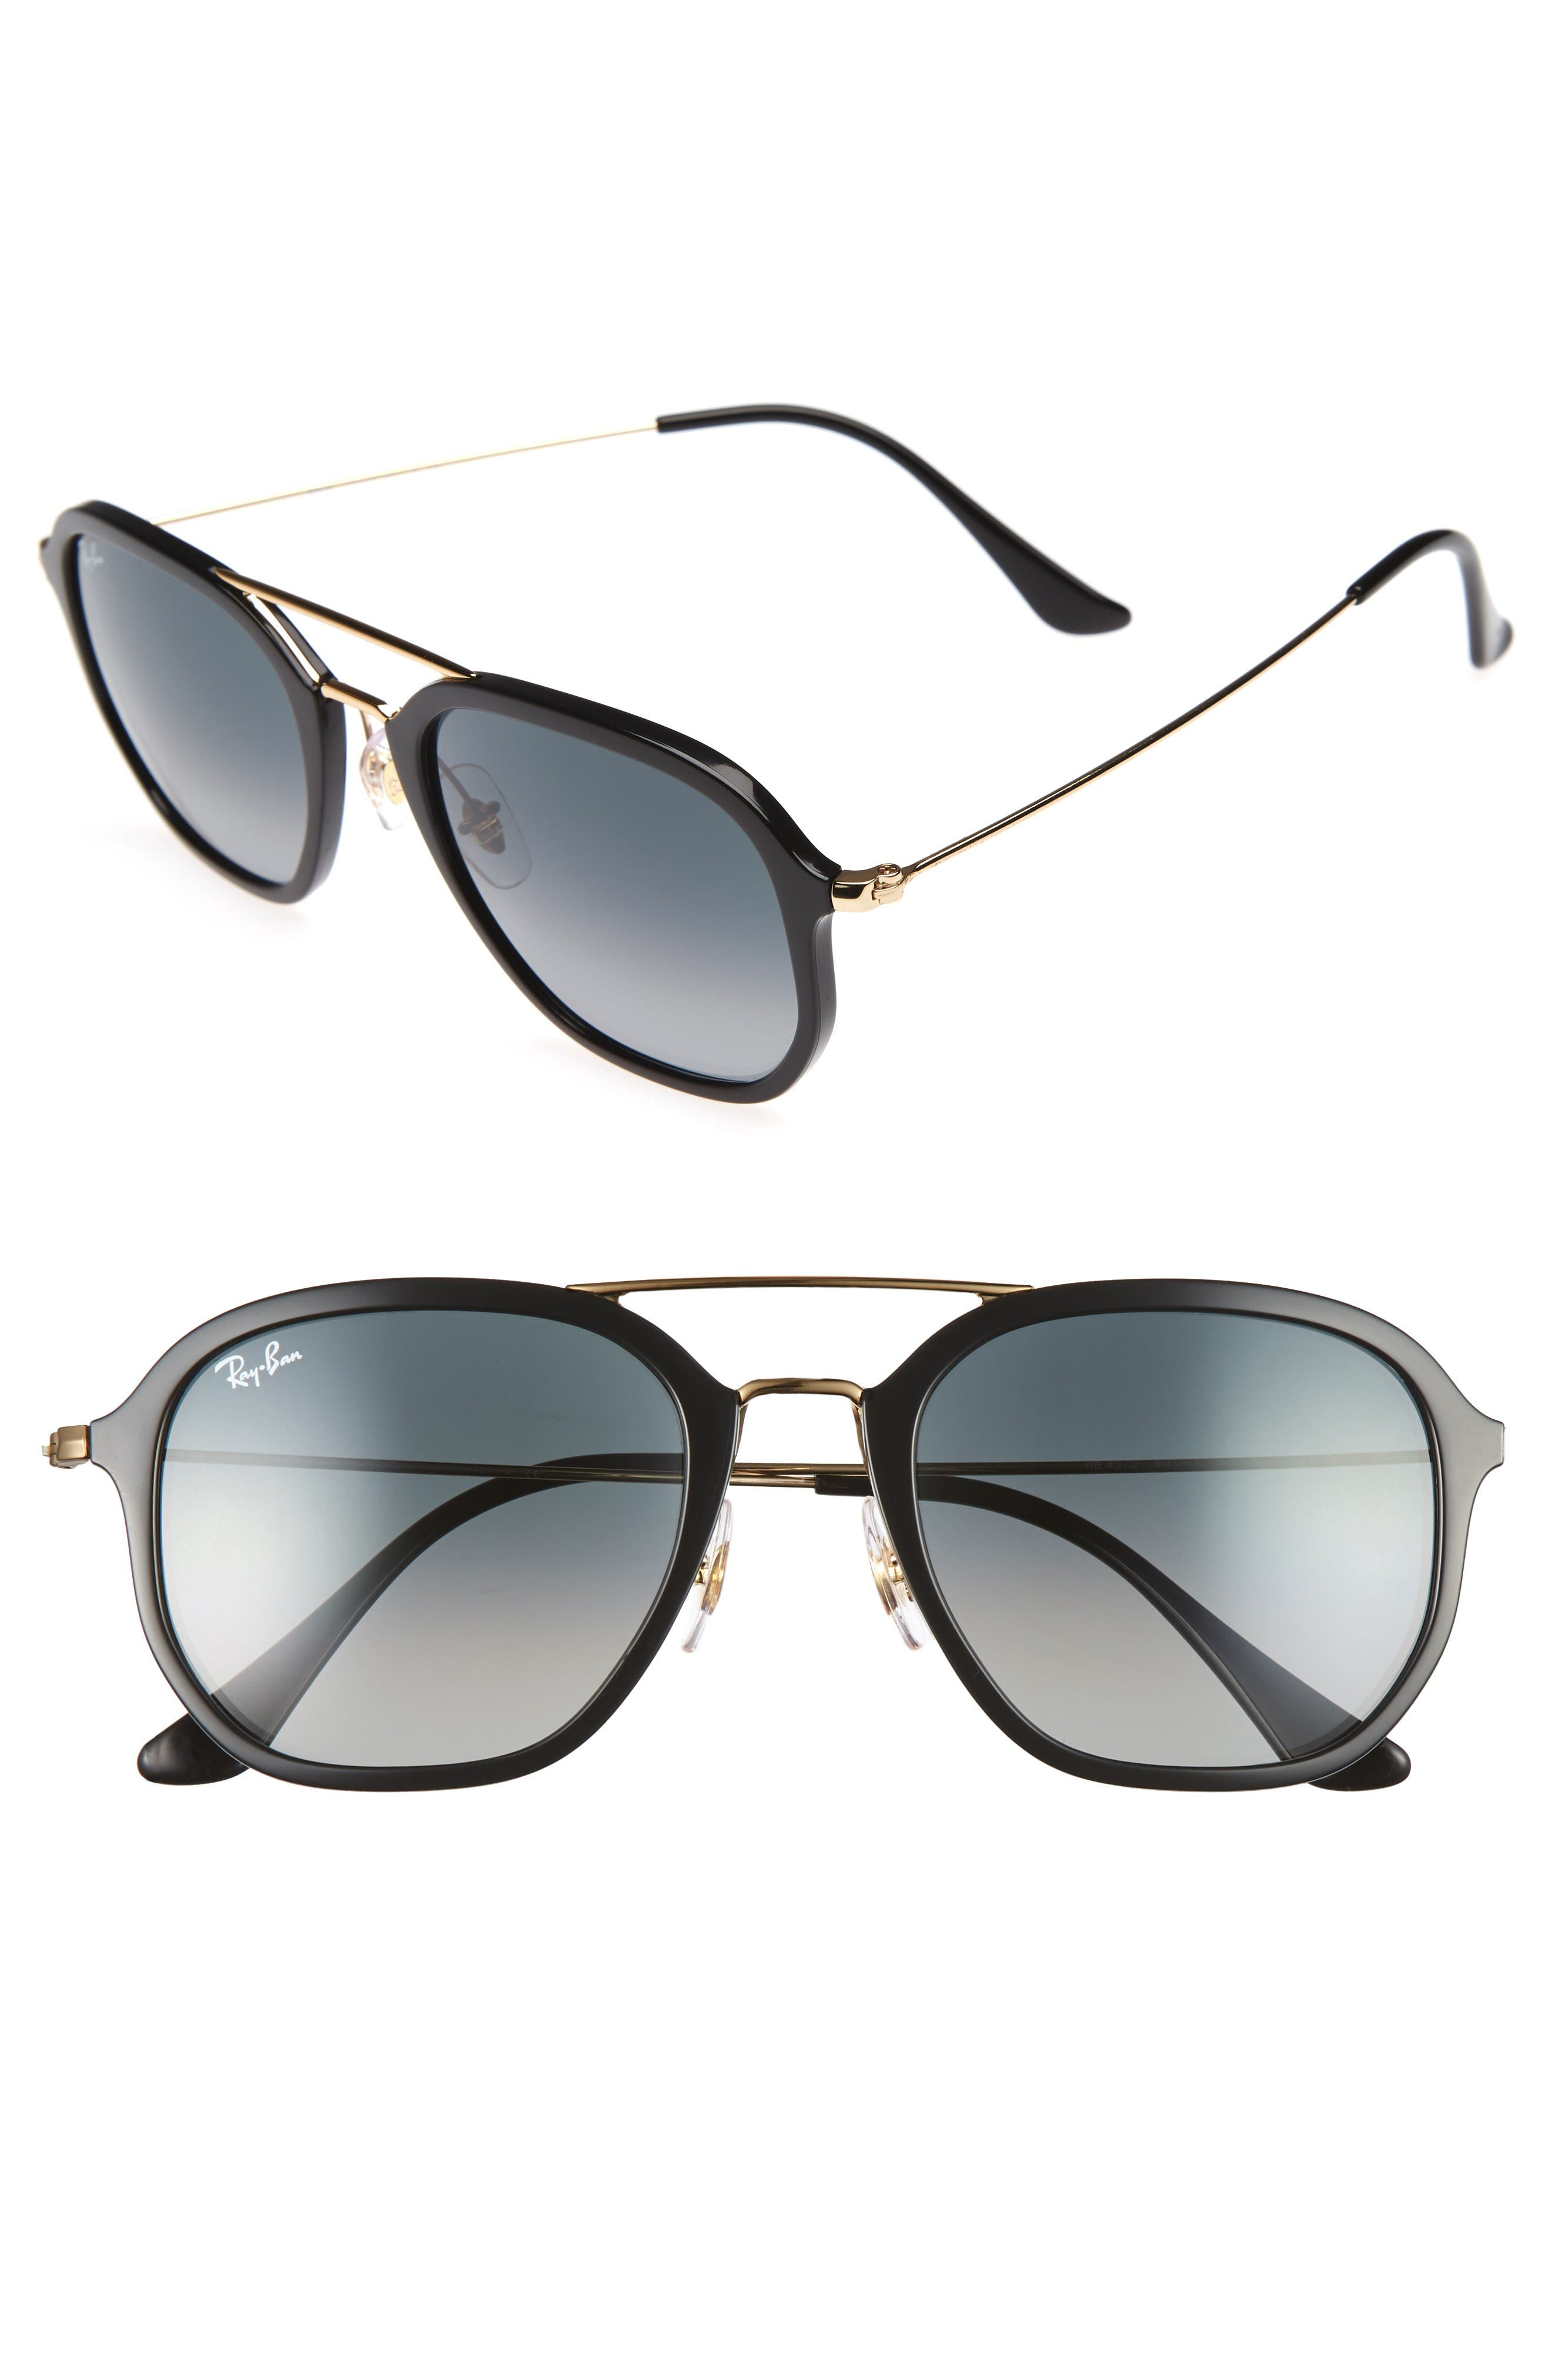 Main Image - Ray-Ban 52mm Square Sunglasses